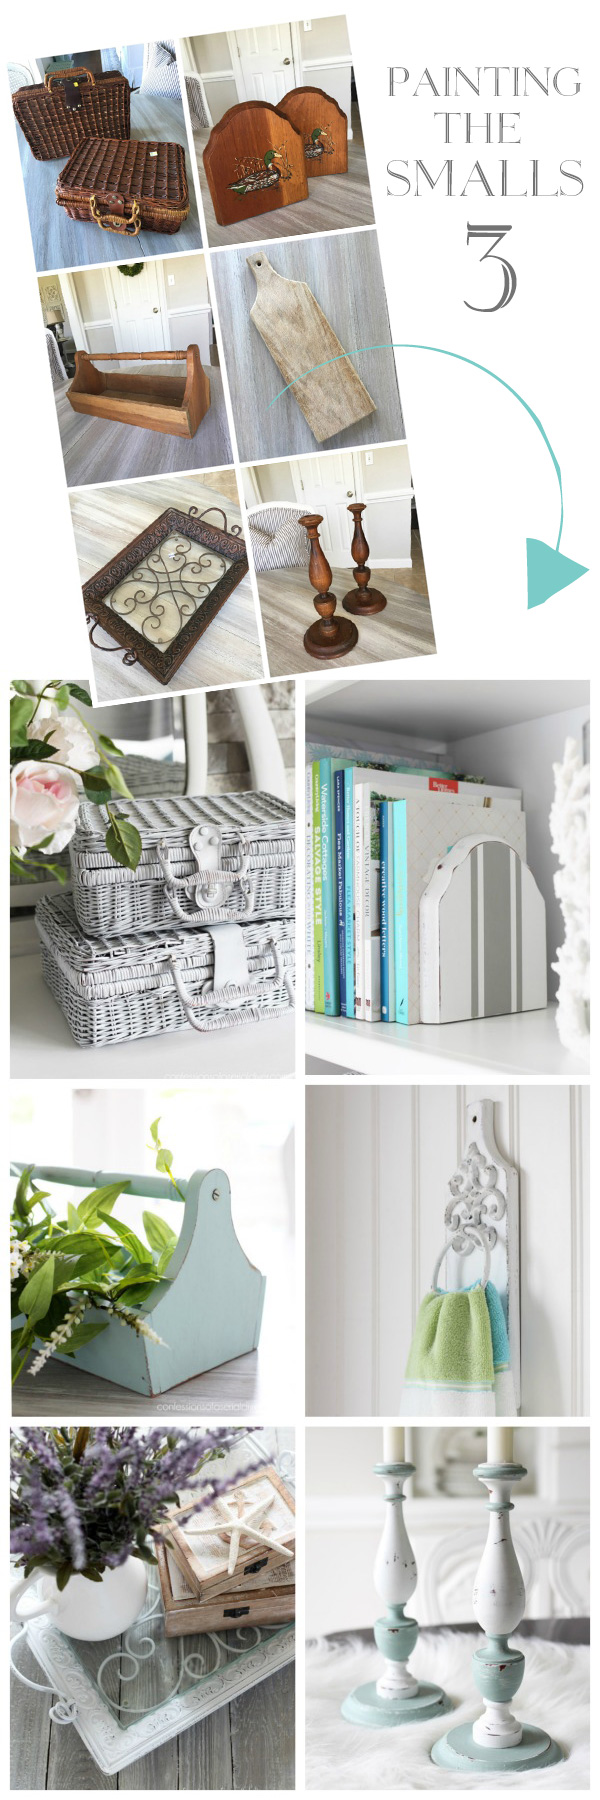 Paint can turn forgotten items into beautiful home decor! confessionsofaserialdiyer.com